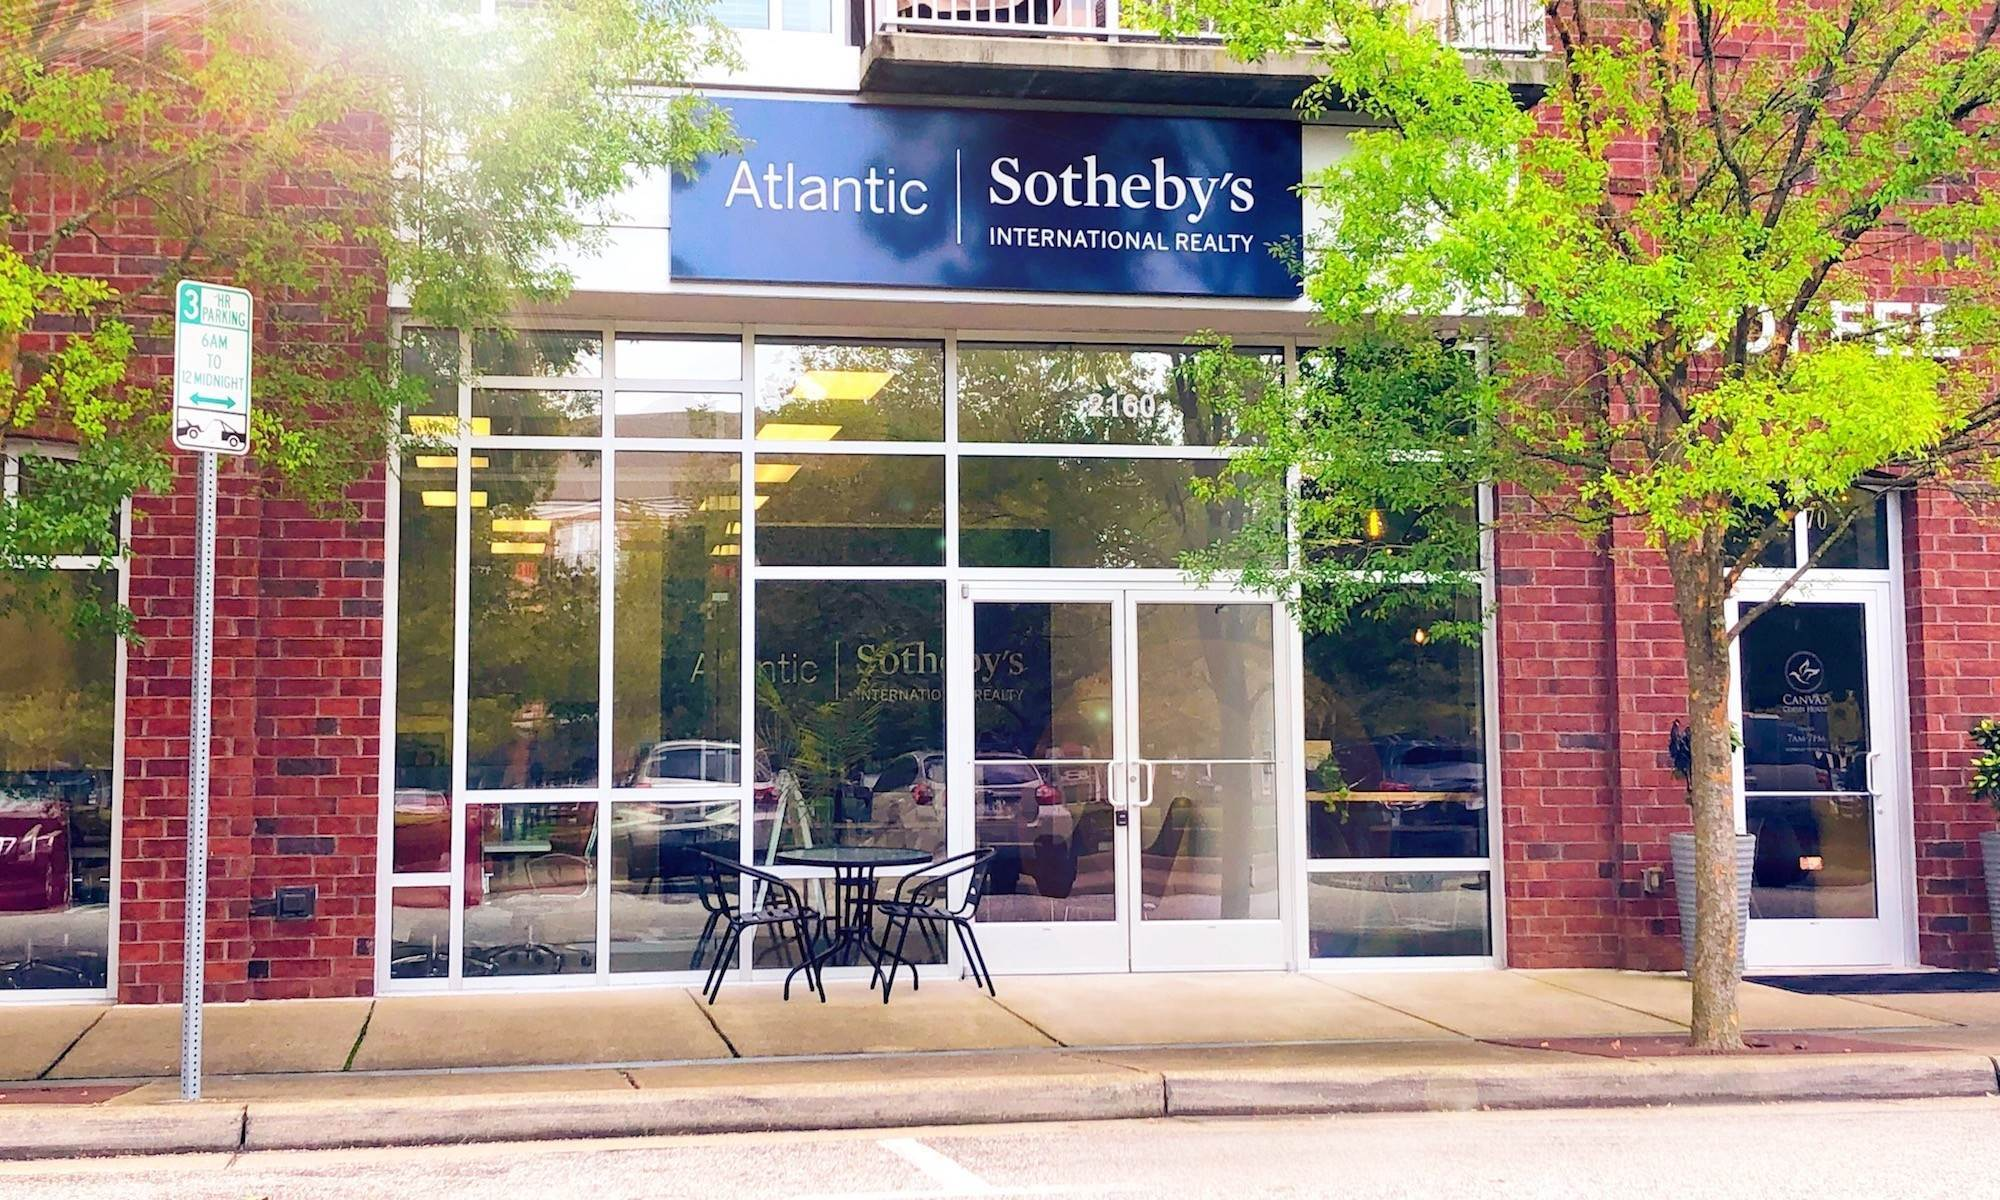 Atlantic Sotheby's International Realty